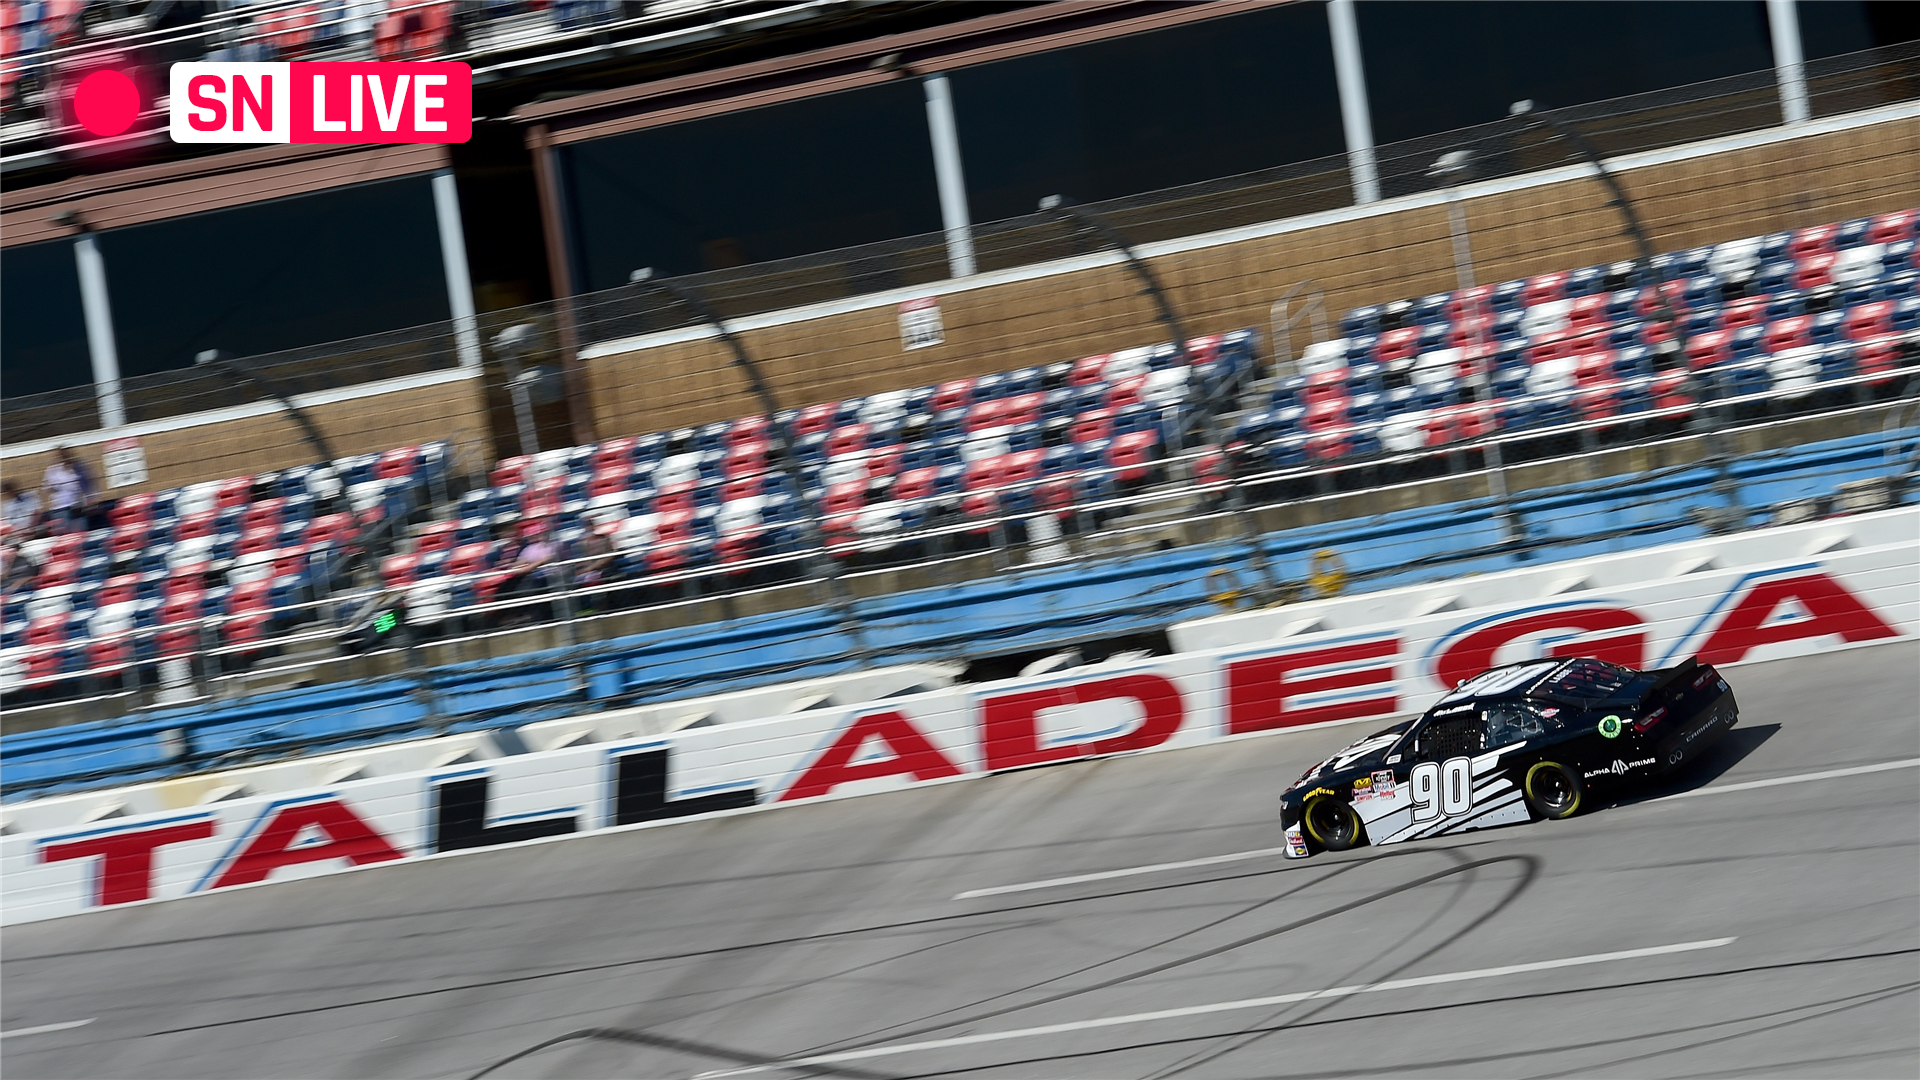 NASCAR at Talladega: Live race updates, results, highlights from Geico 500